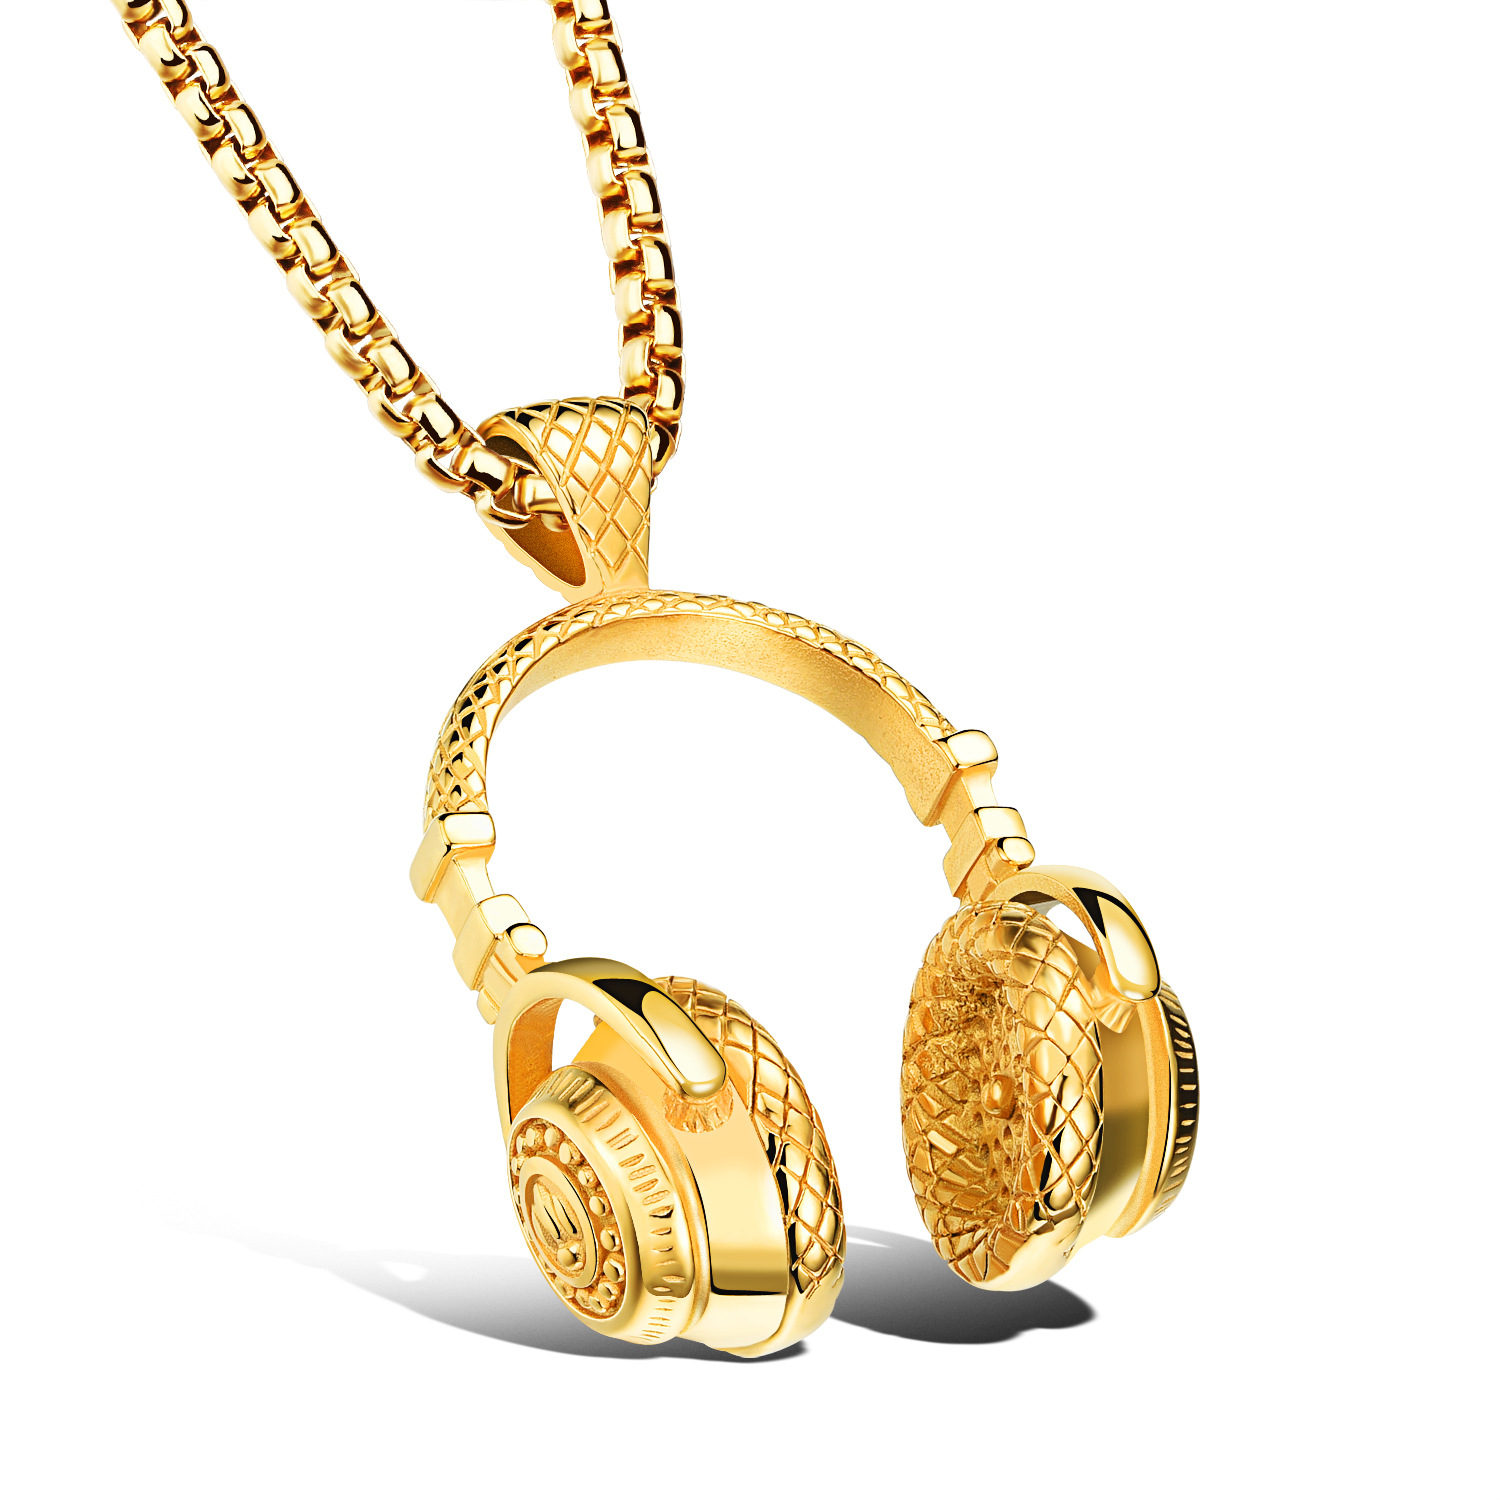 Hip Hop Jewelry Men Necklace Stainless Steel Music Headphone Pendant  Necklaces 2018 Fashion Cool Gifts Mens Jewellery Collier cfe028a68526